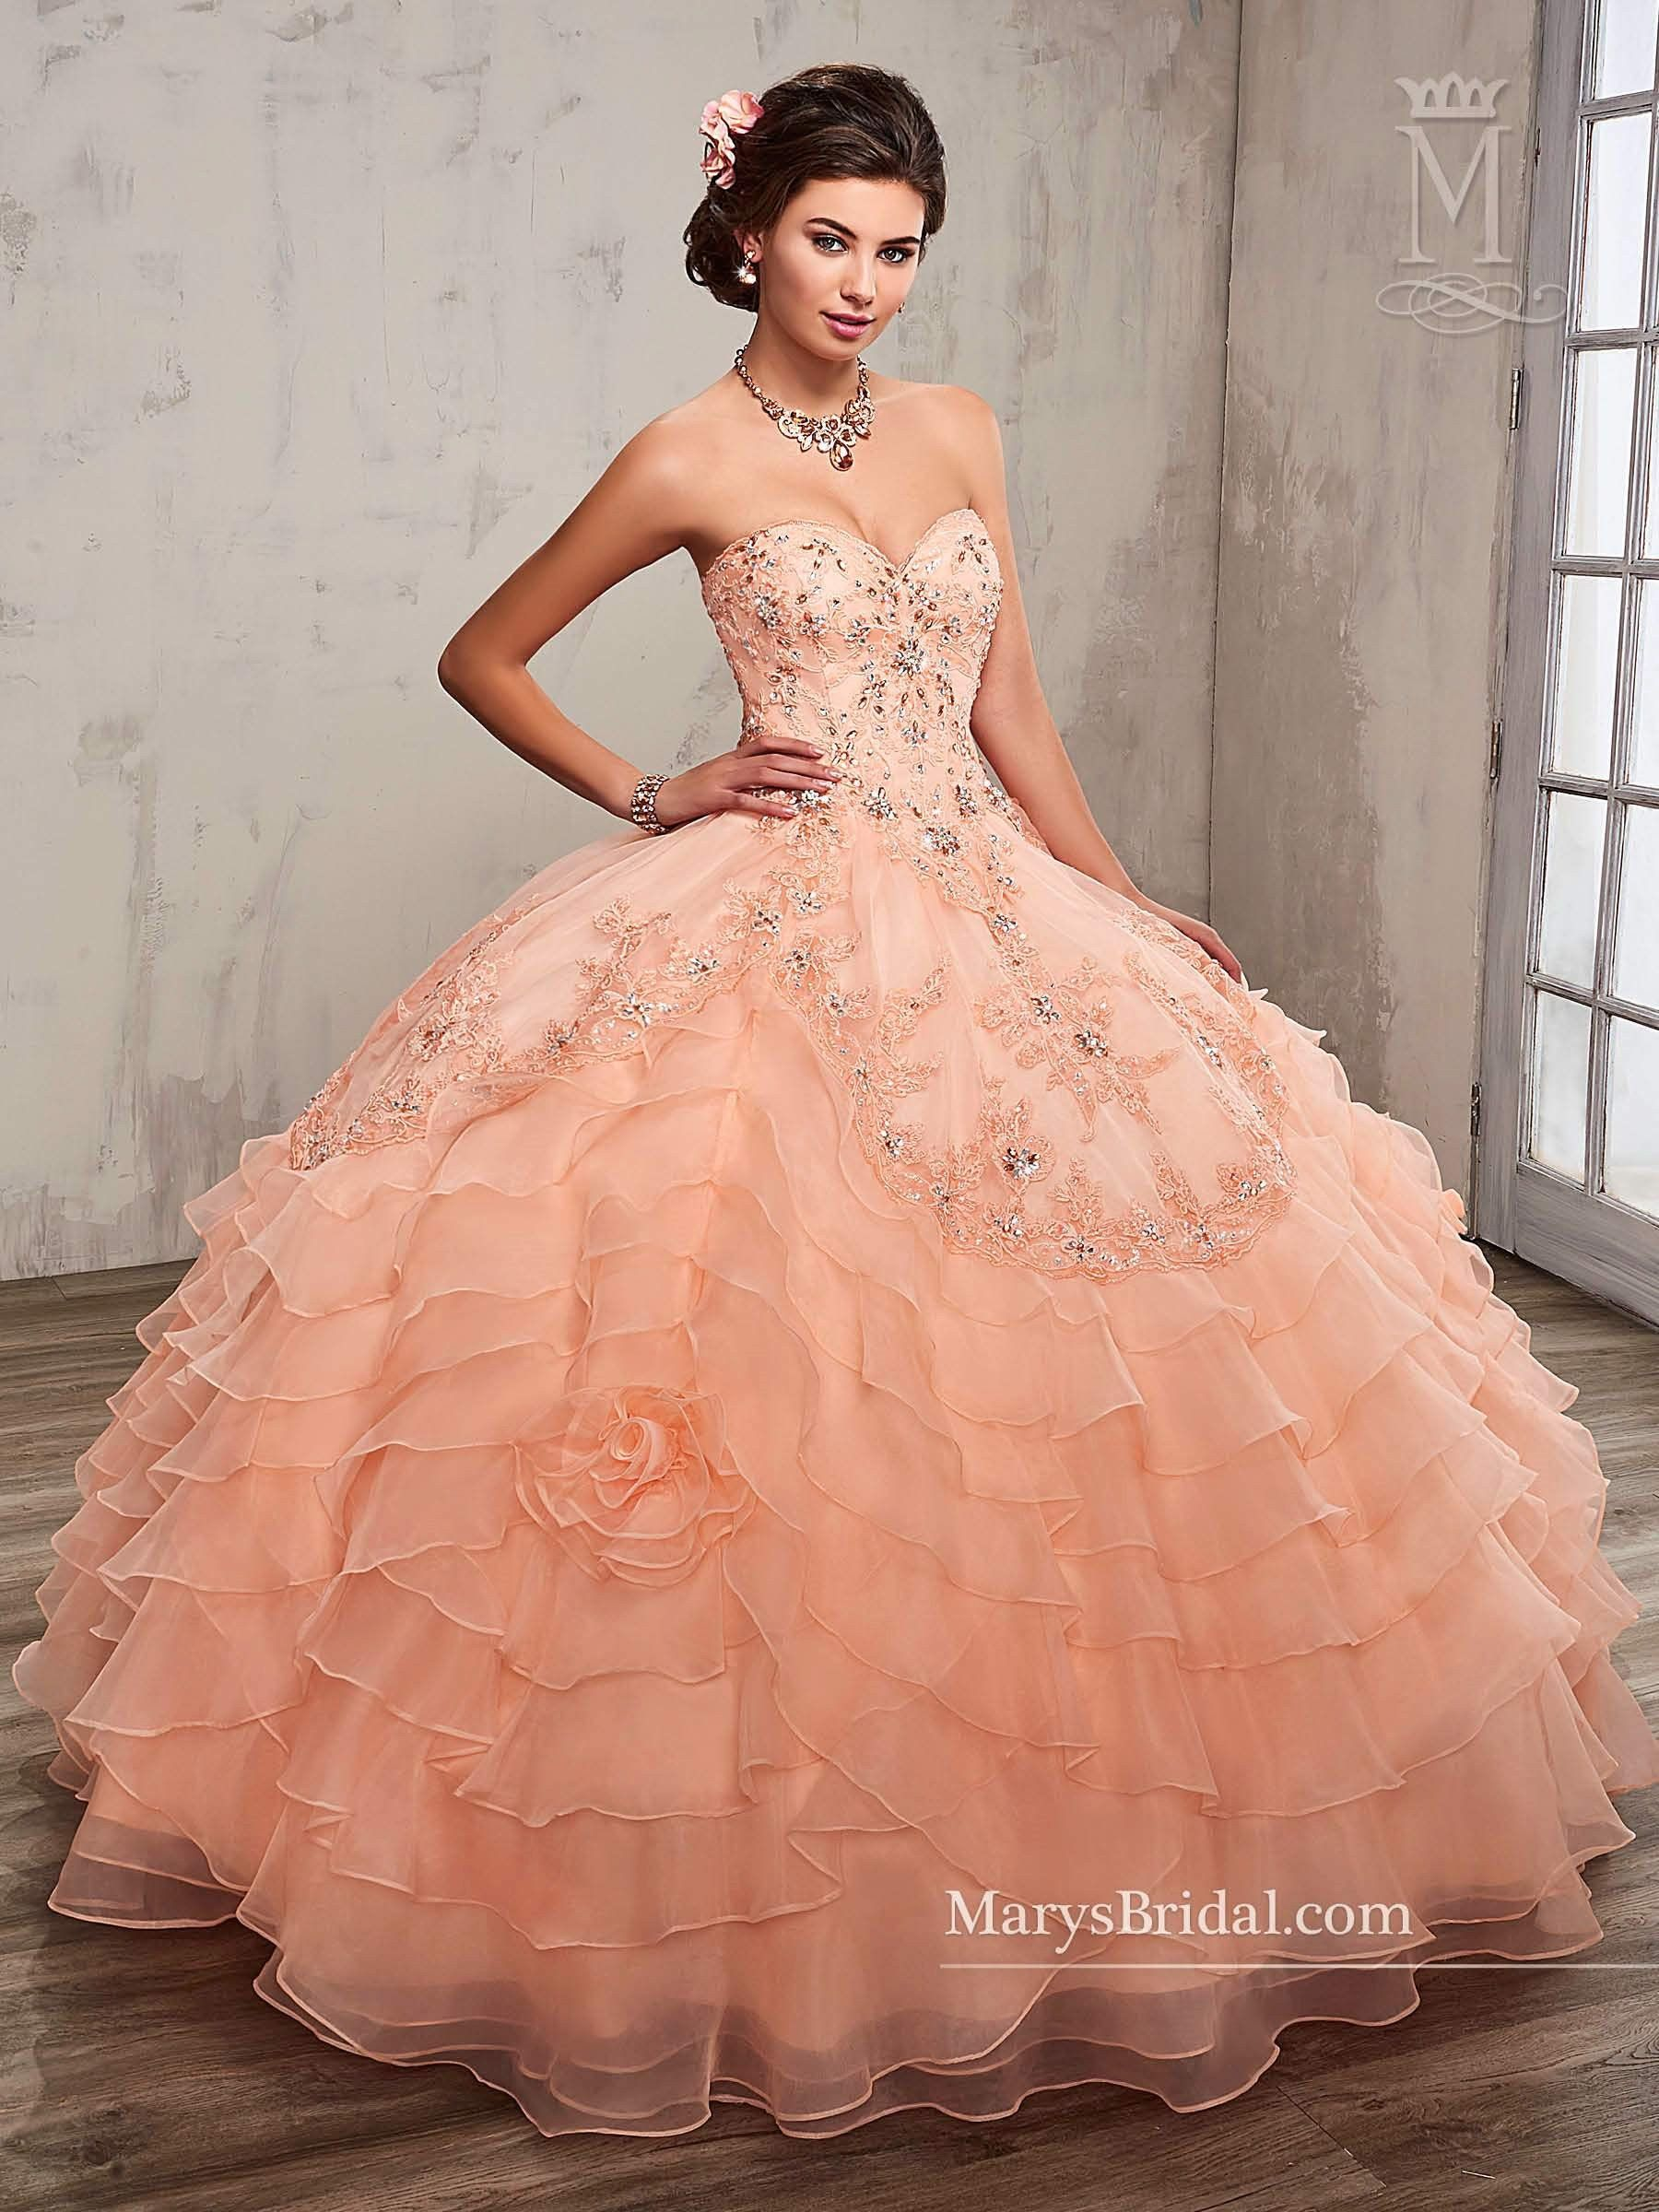 4c39e3357eb Strapless Tiered Quinceanera Dress by Mary s Bridal Princess 4Q505 ...